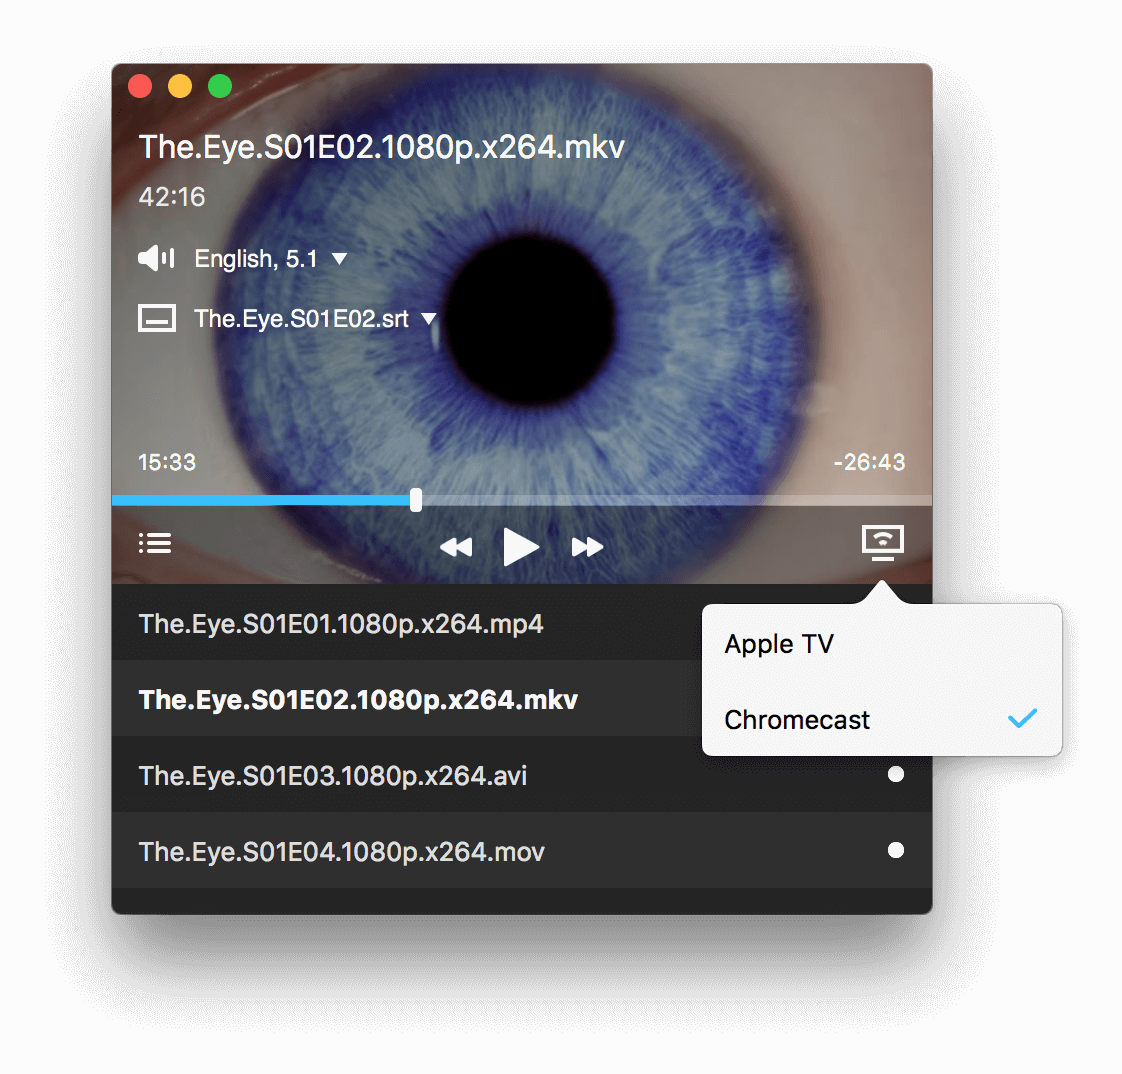 Beamer 3.0 - Stream Video from a Mac to Apple TV and Chromecast Devices Image